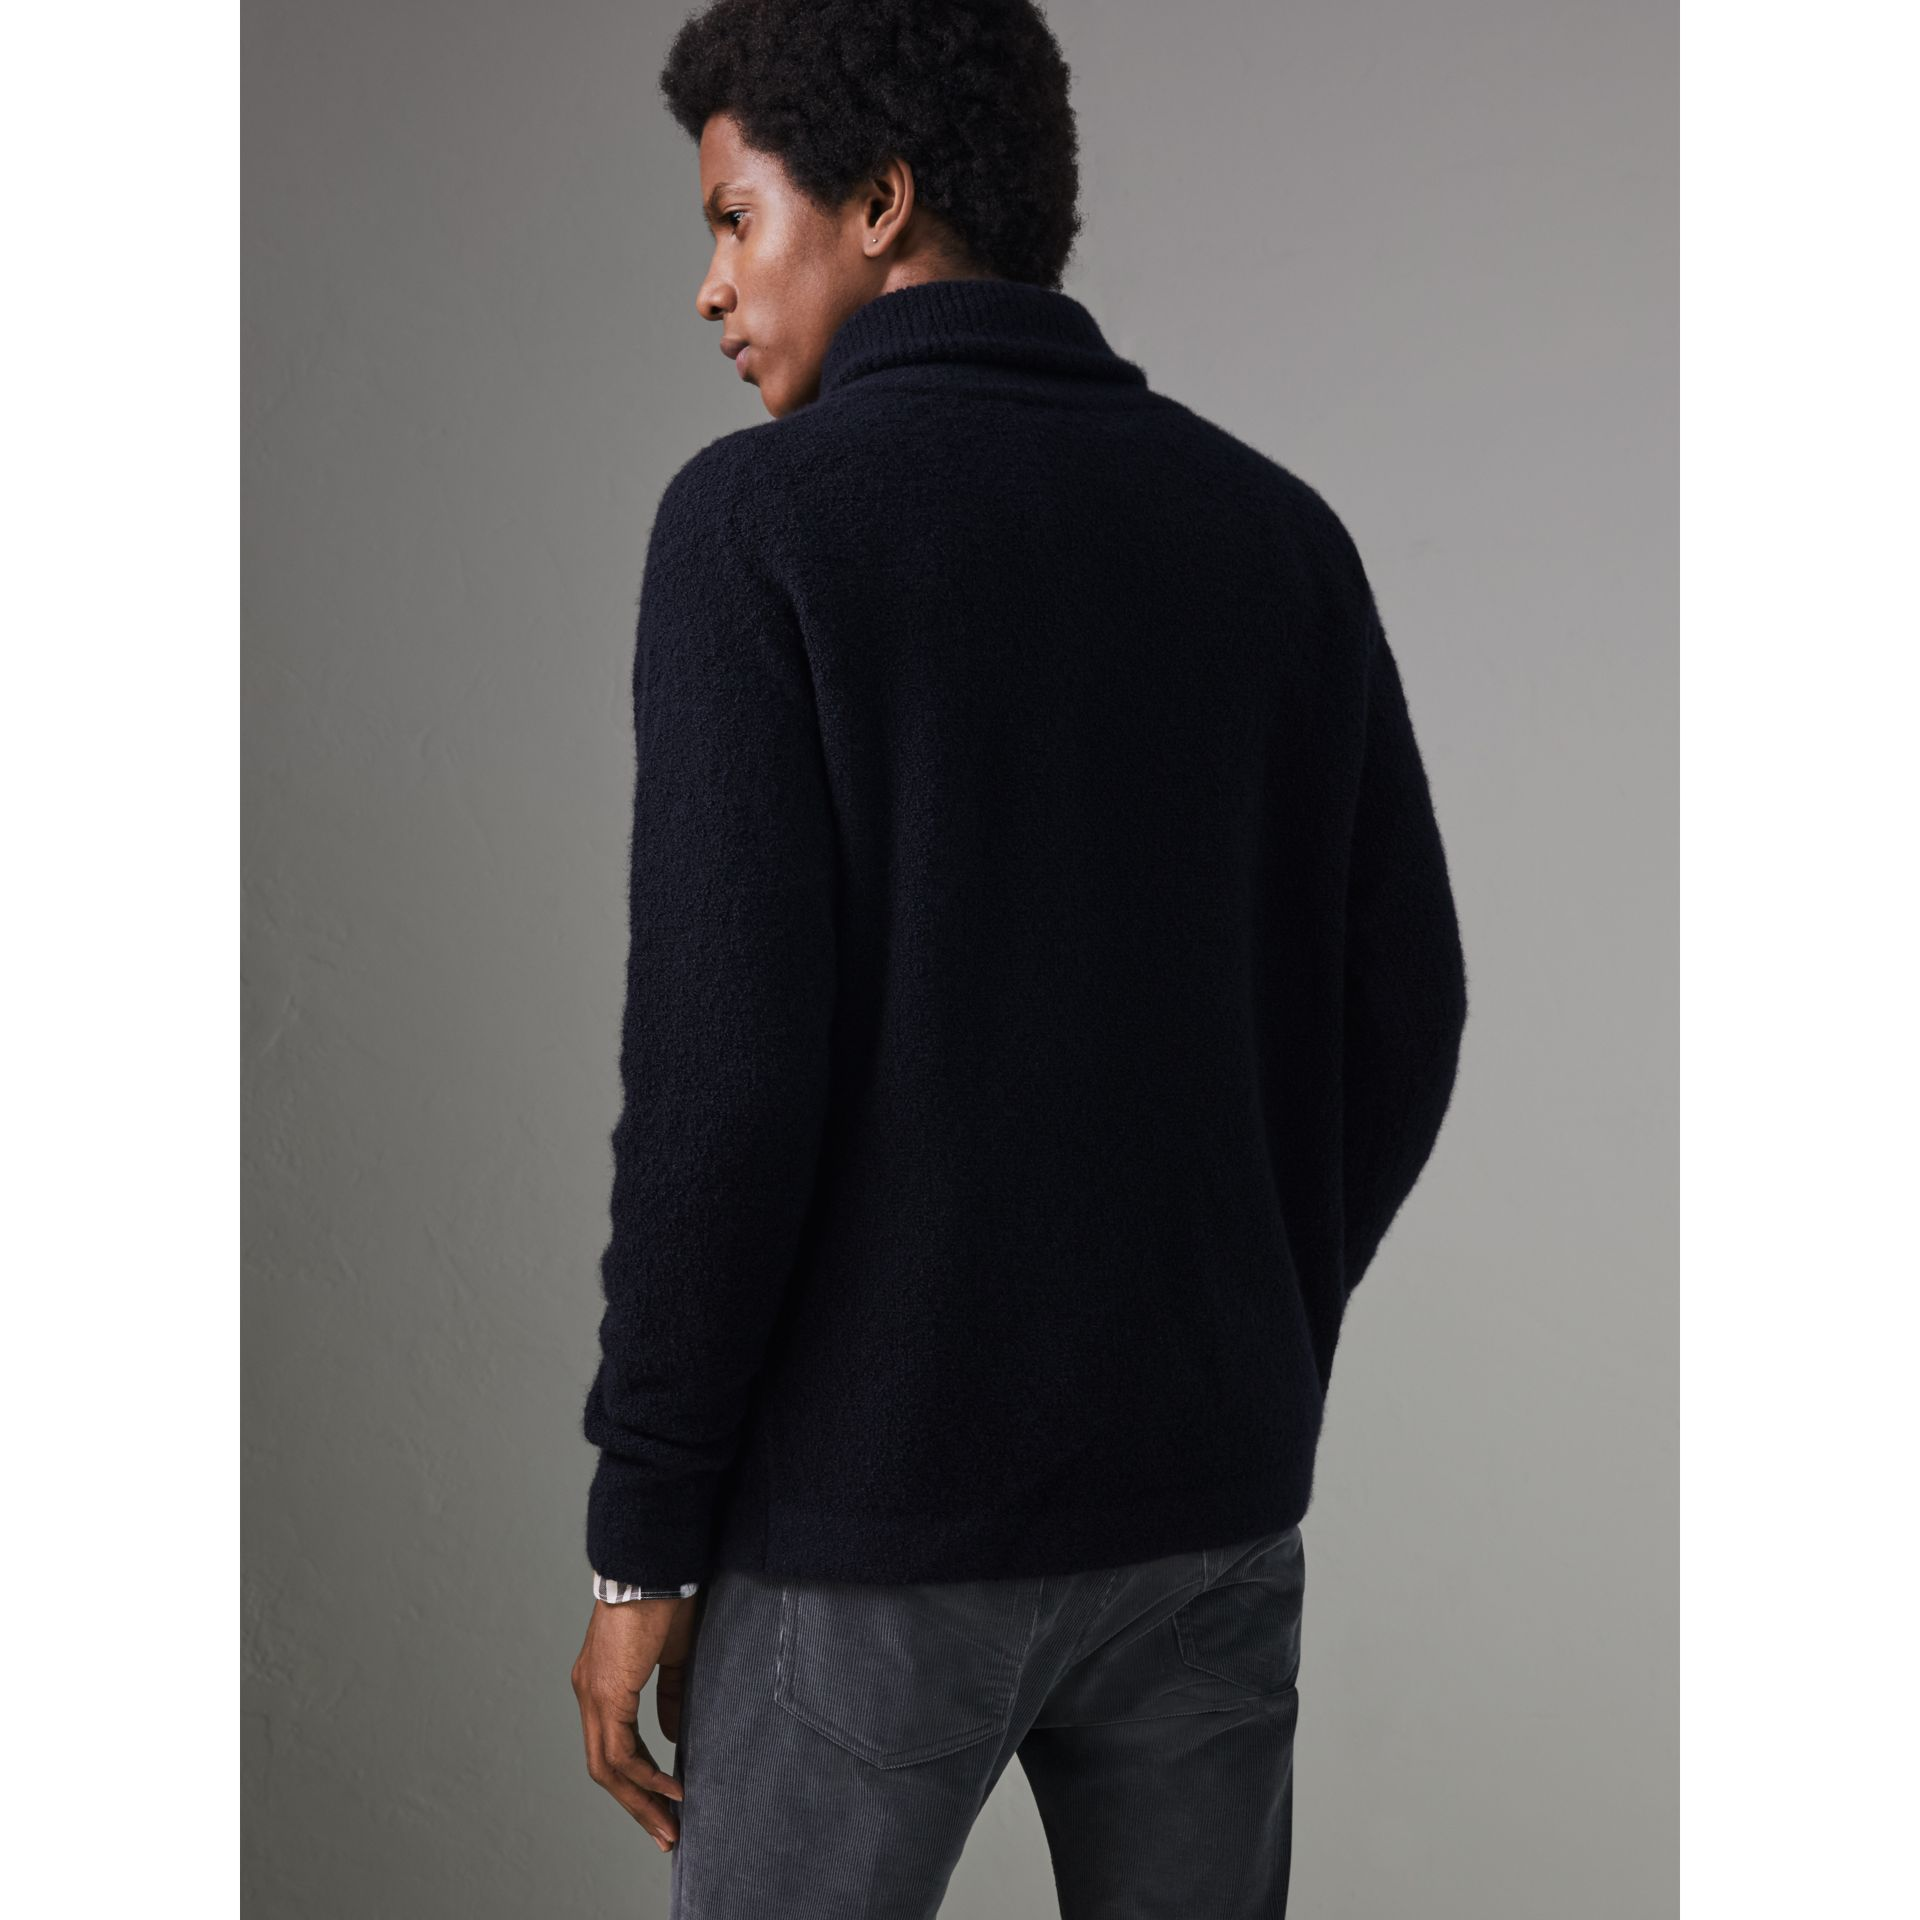 Zip-neck Cashmere Blend Fleece Sweater in Navy - Men | Burberry Canada - gallery image 2